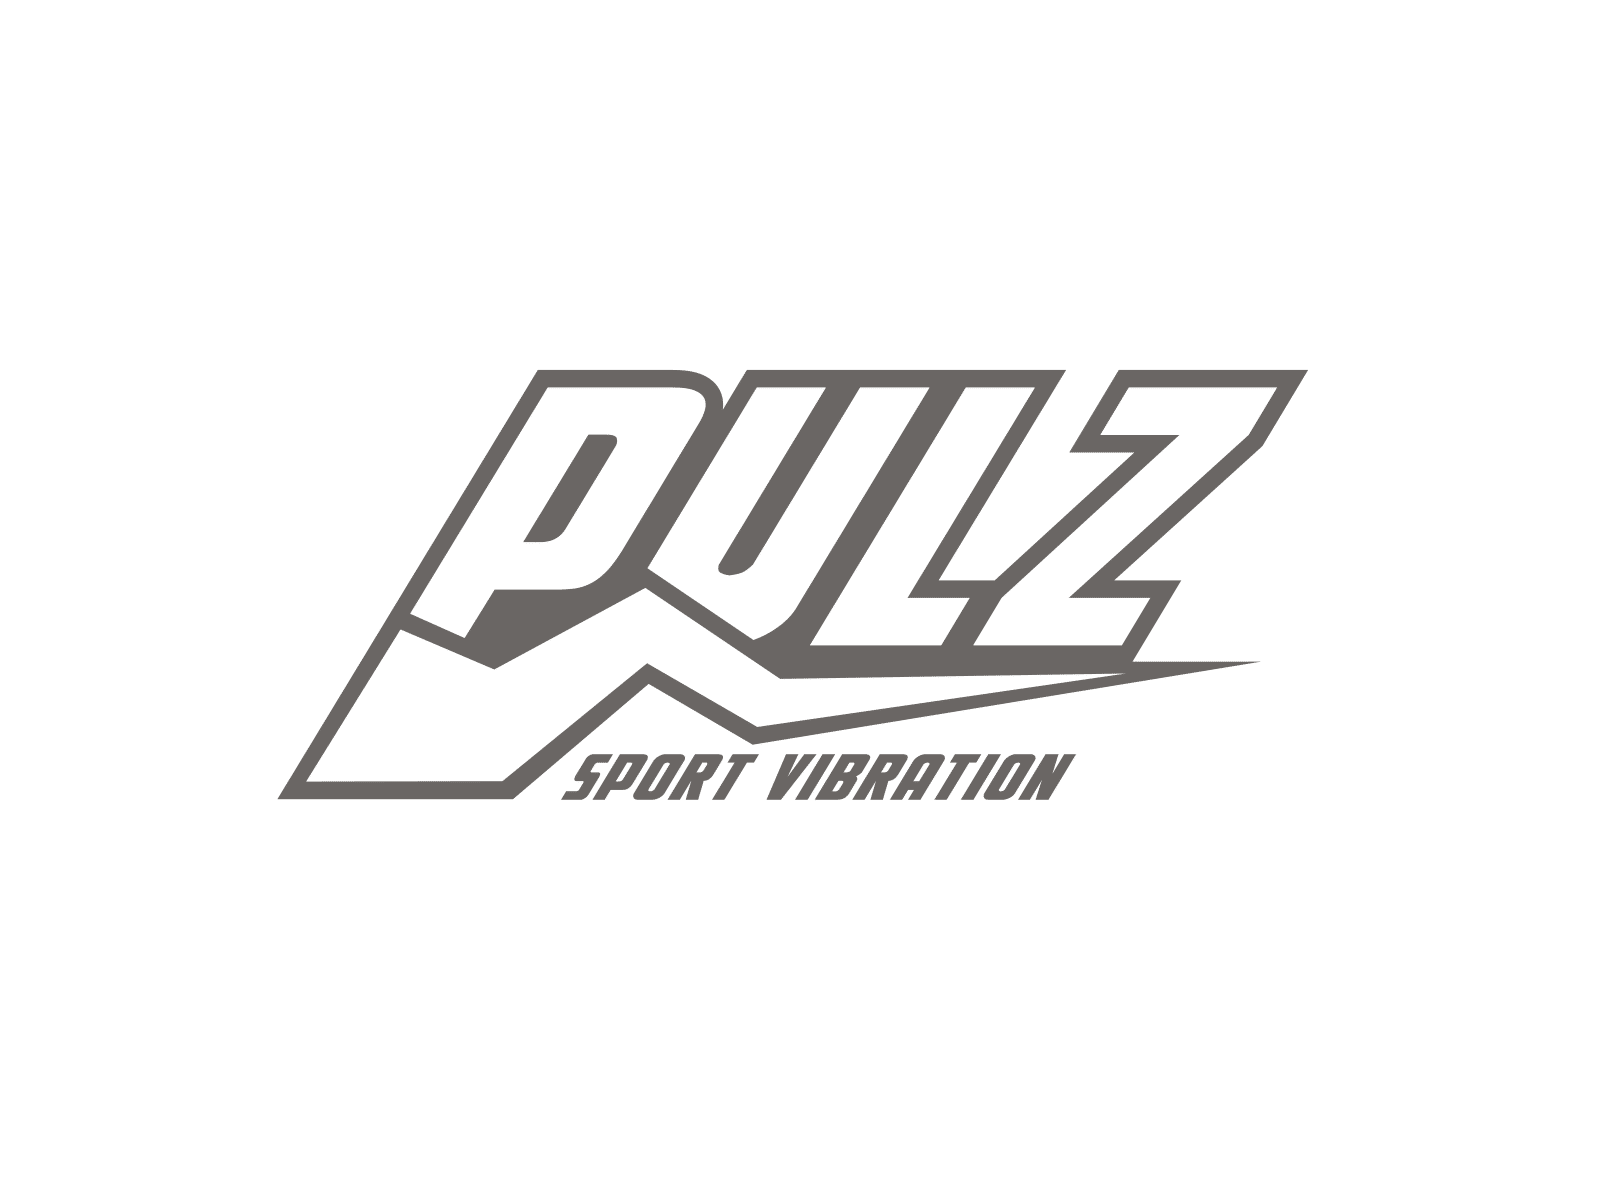 Logo PULZ Sport Vibration France - Client de STARFACTORY Communication